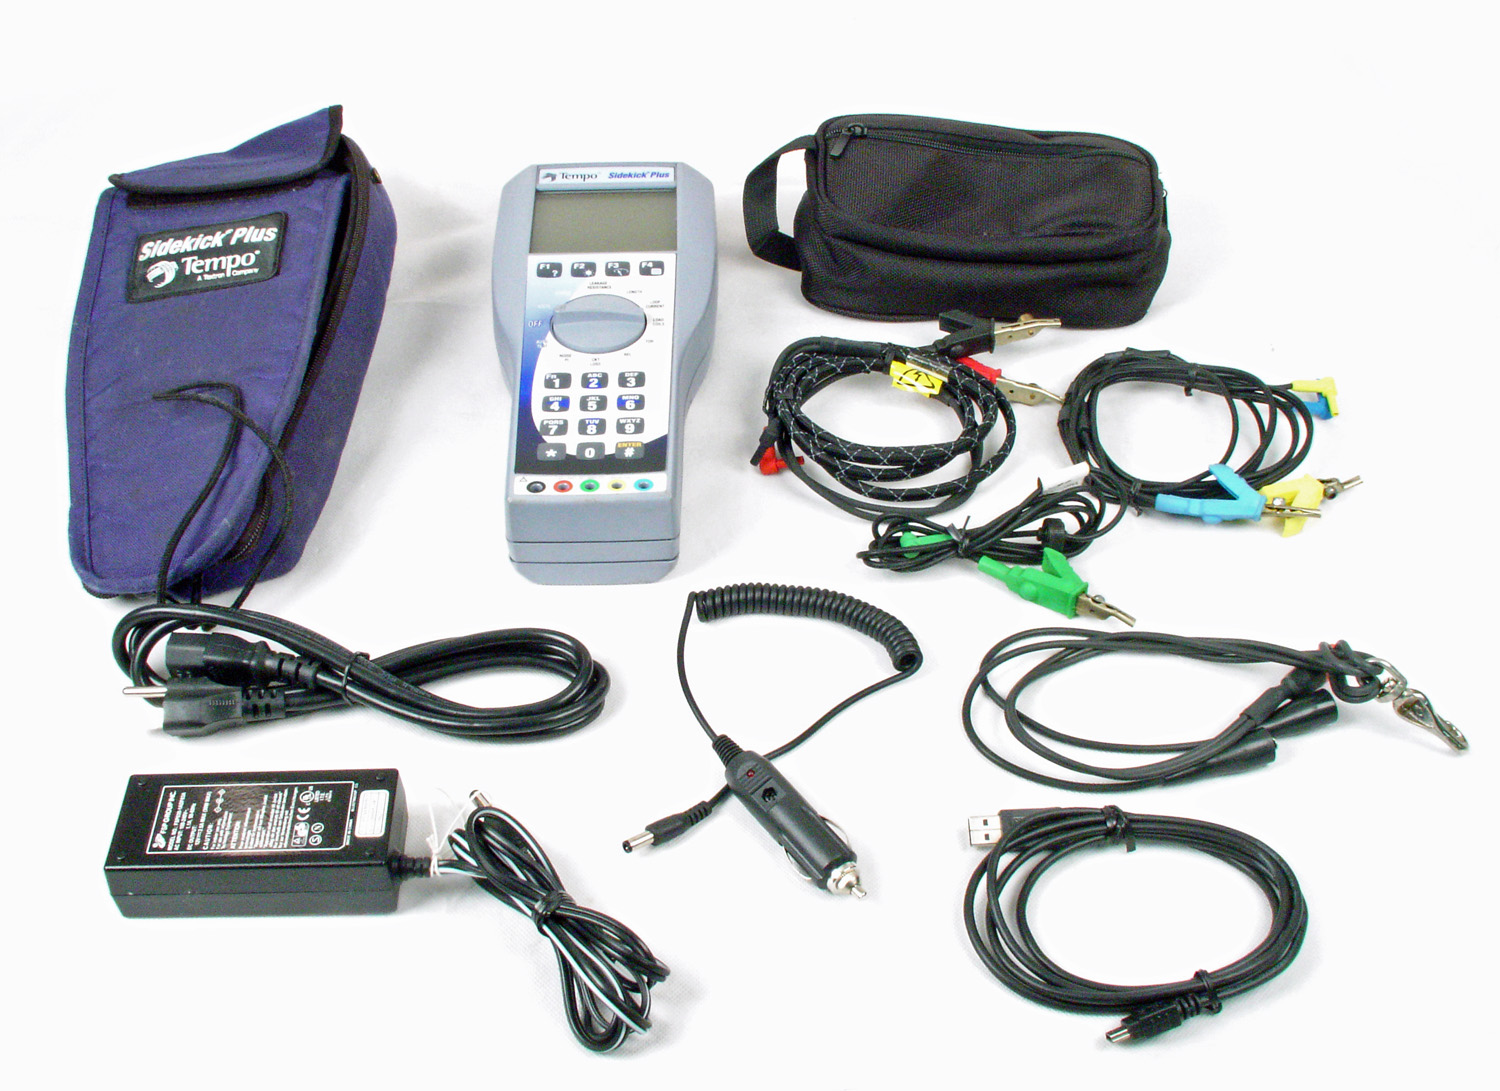 tempo research sidekick plus for sale 595 00 accusource electronics rh accusrc com tempo sidekick t&n manual pdf Tempo Sidekick TN User Manual